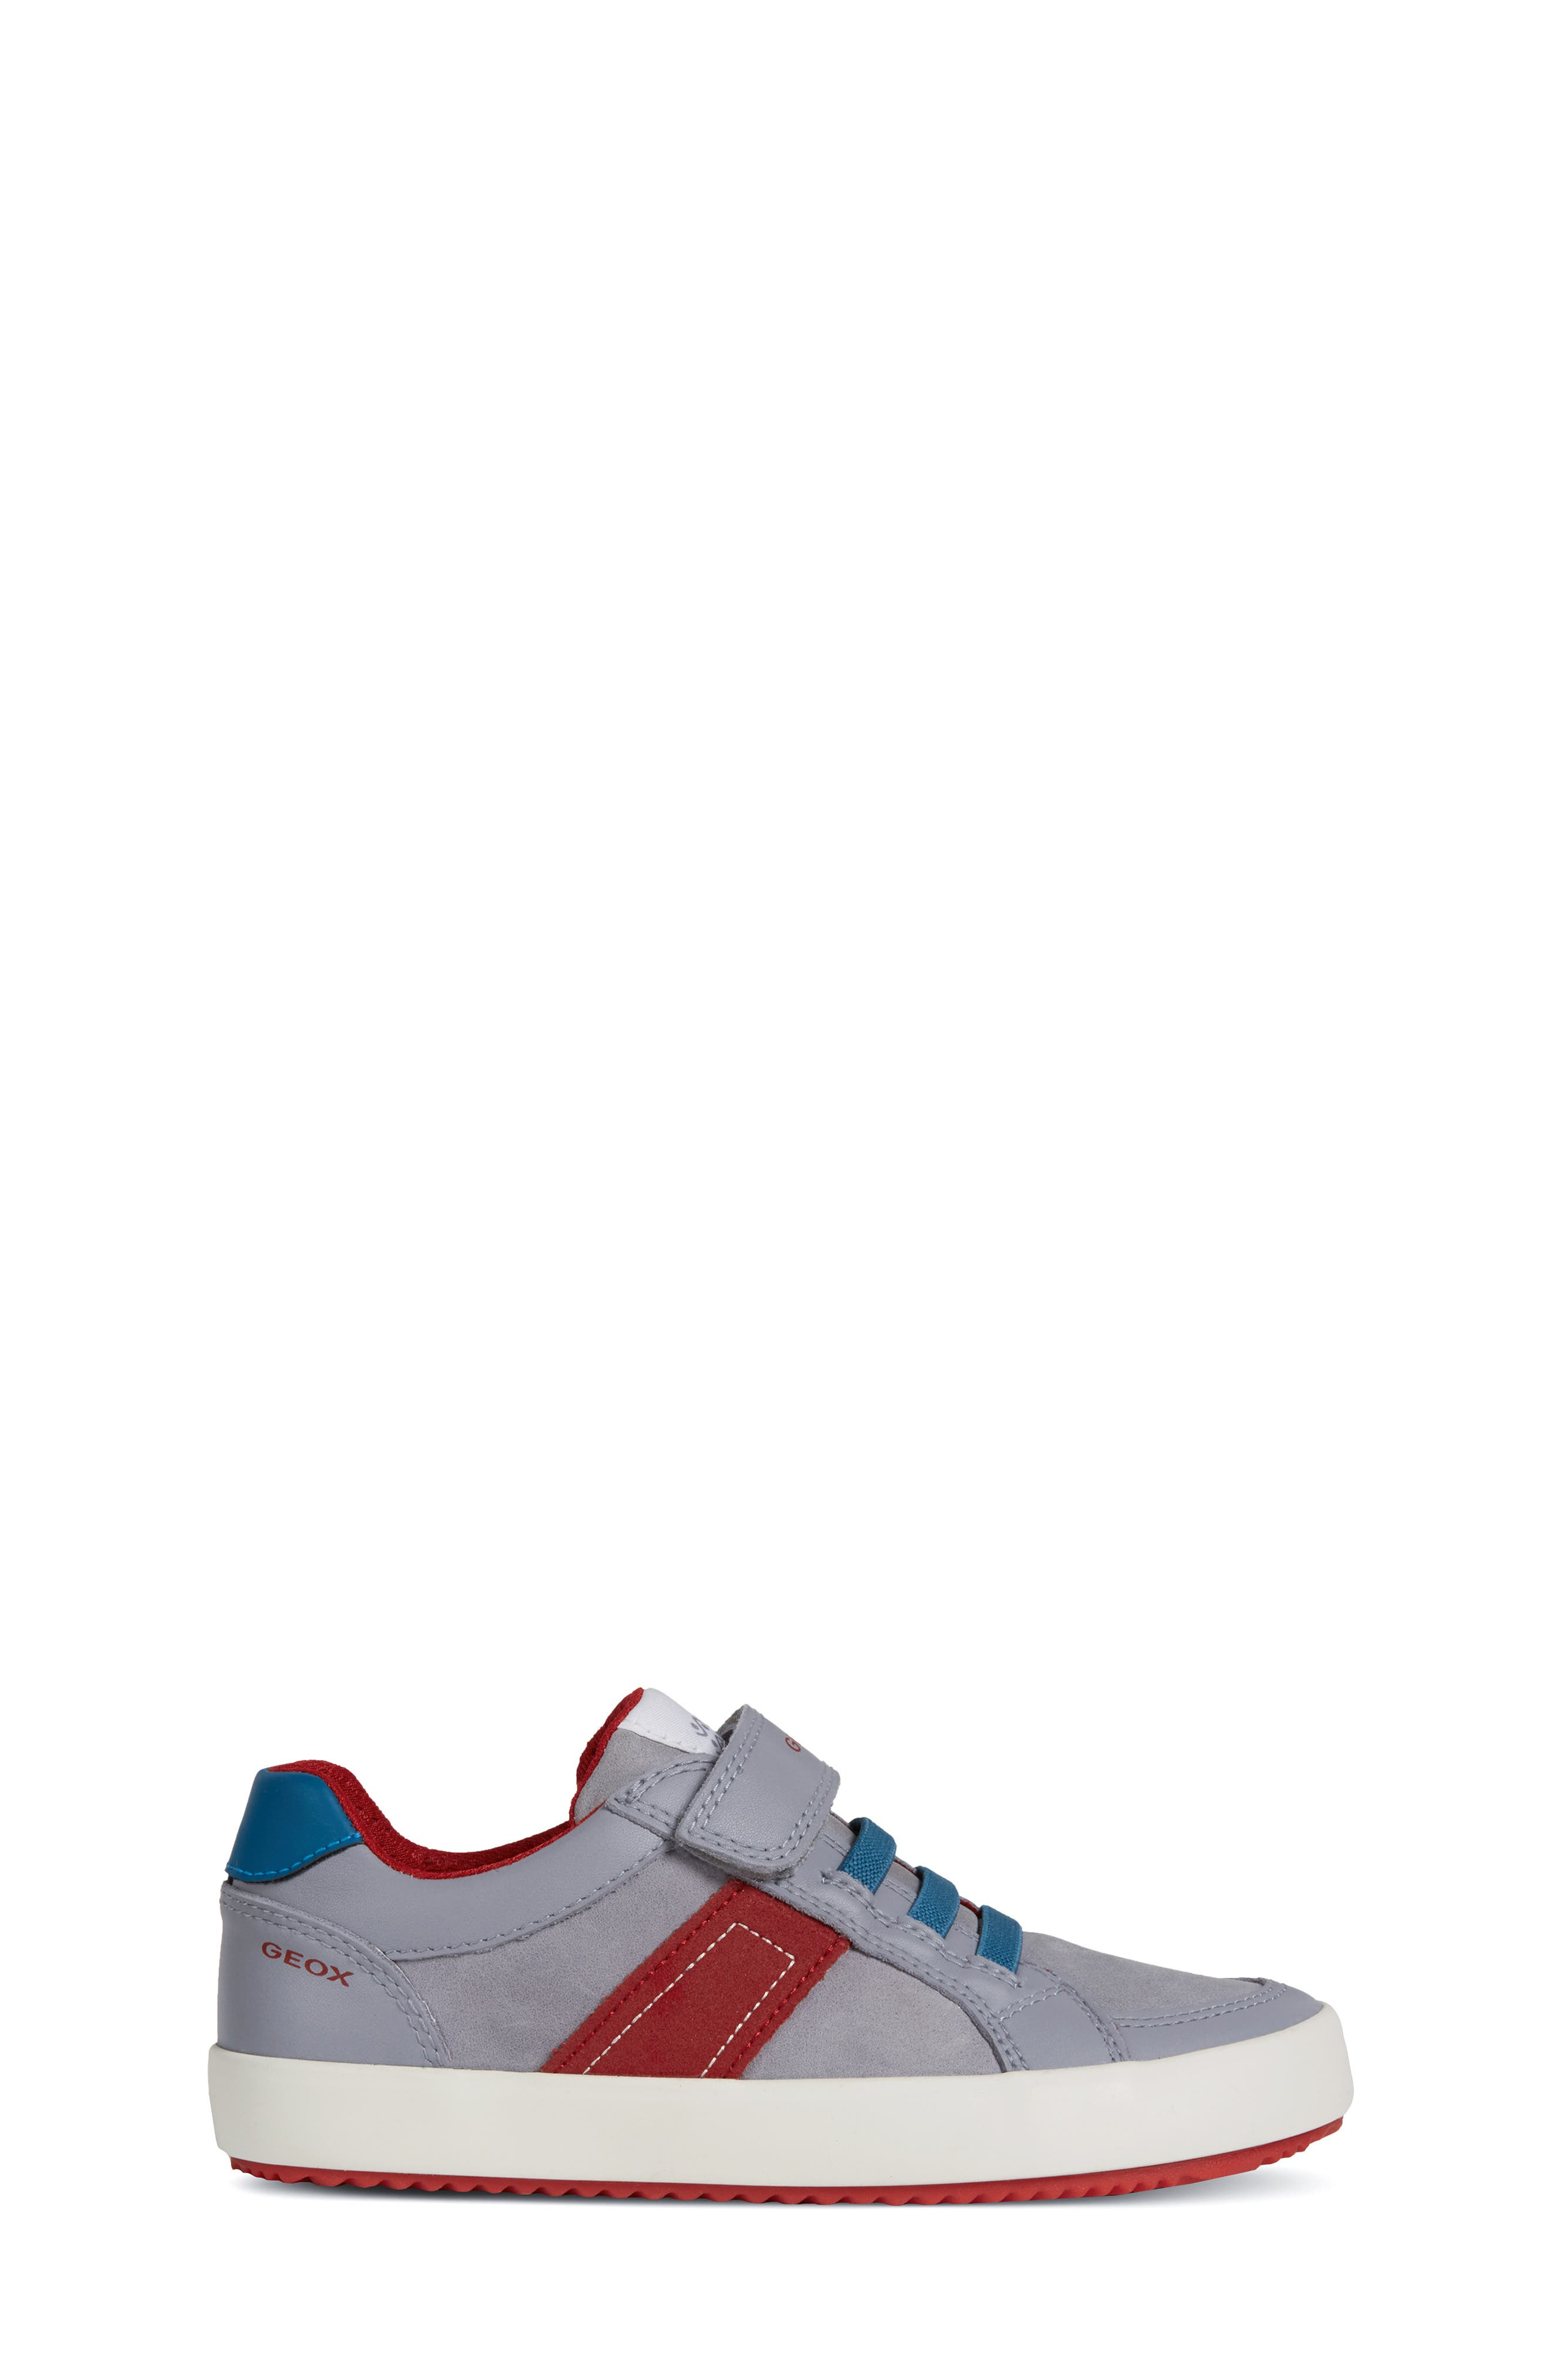 Alonisso Low Top Sneaker,                             Alternate thumbnail 3, color,                             GREY/ RED